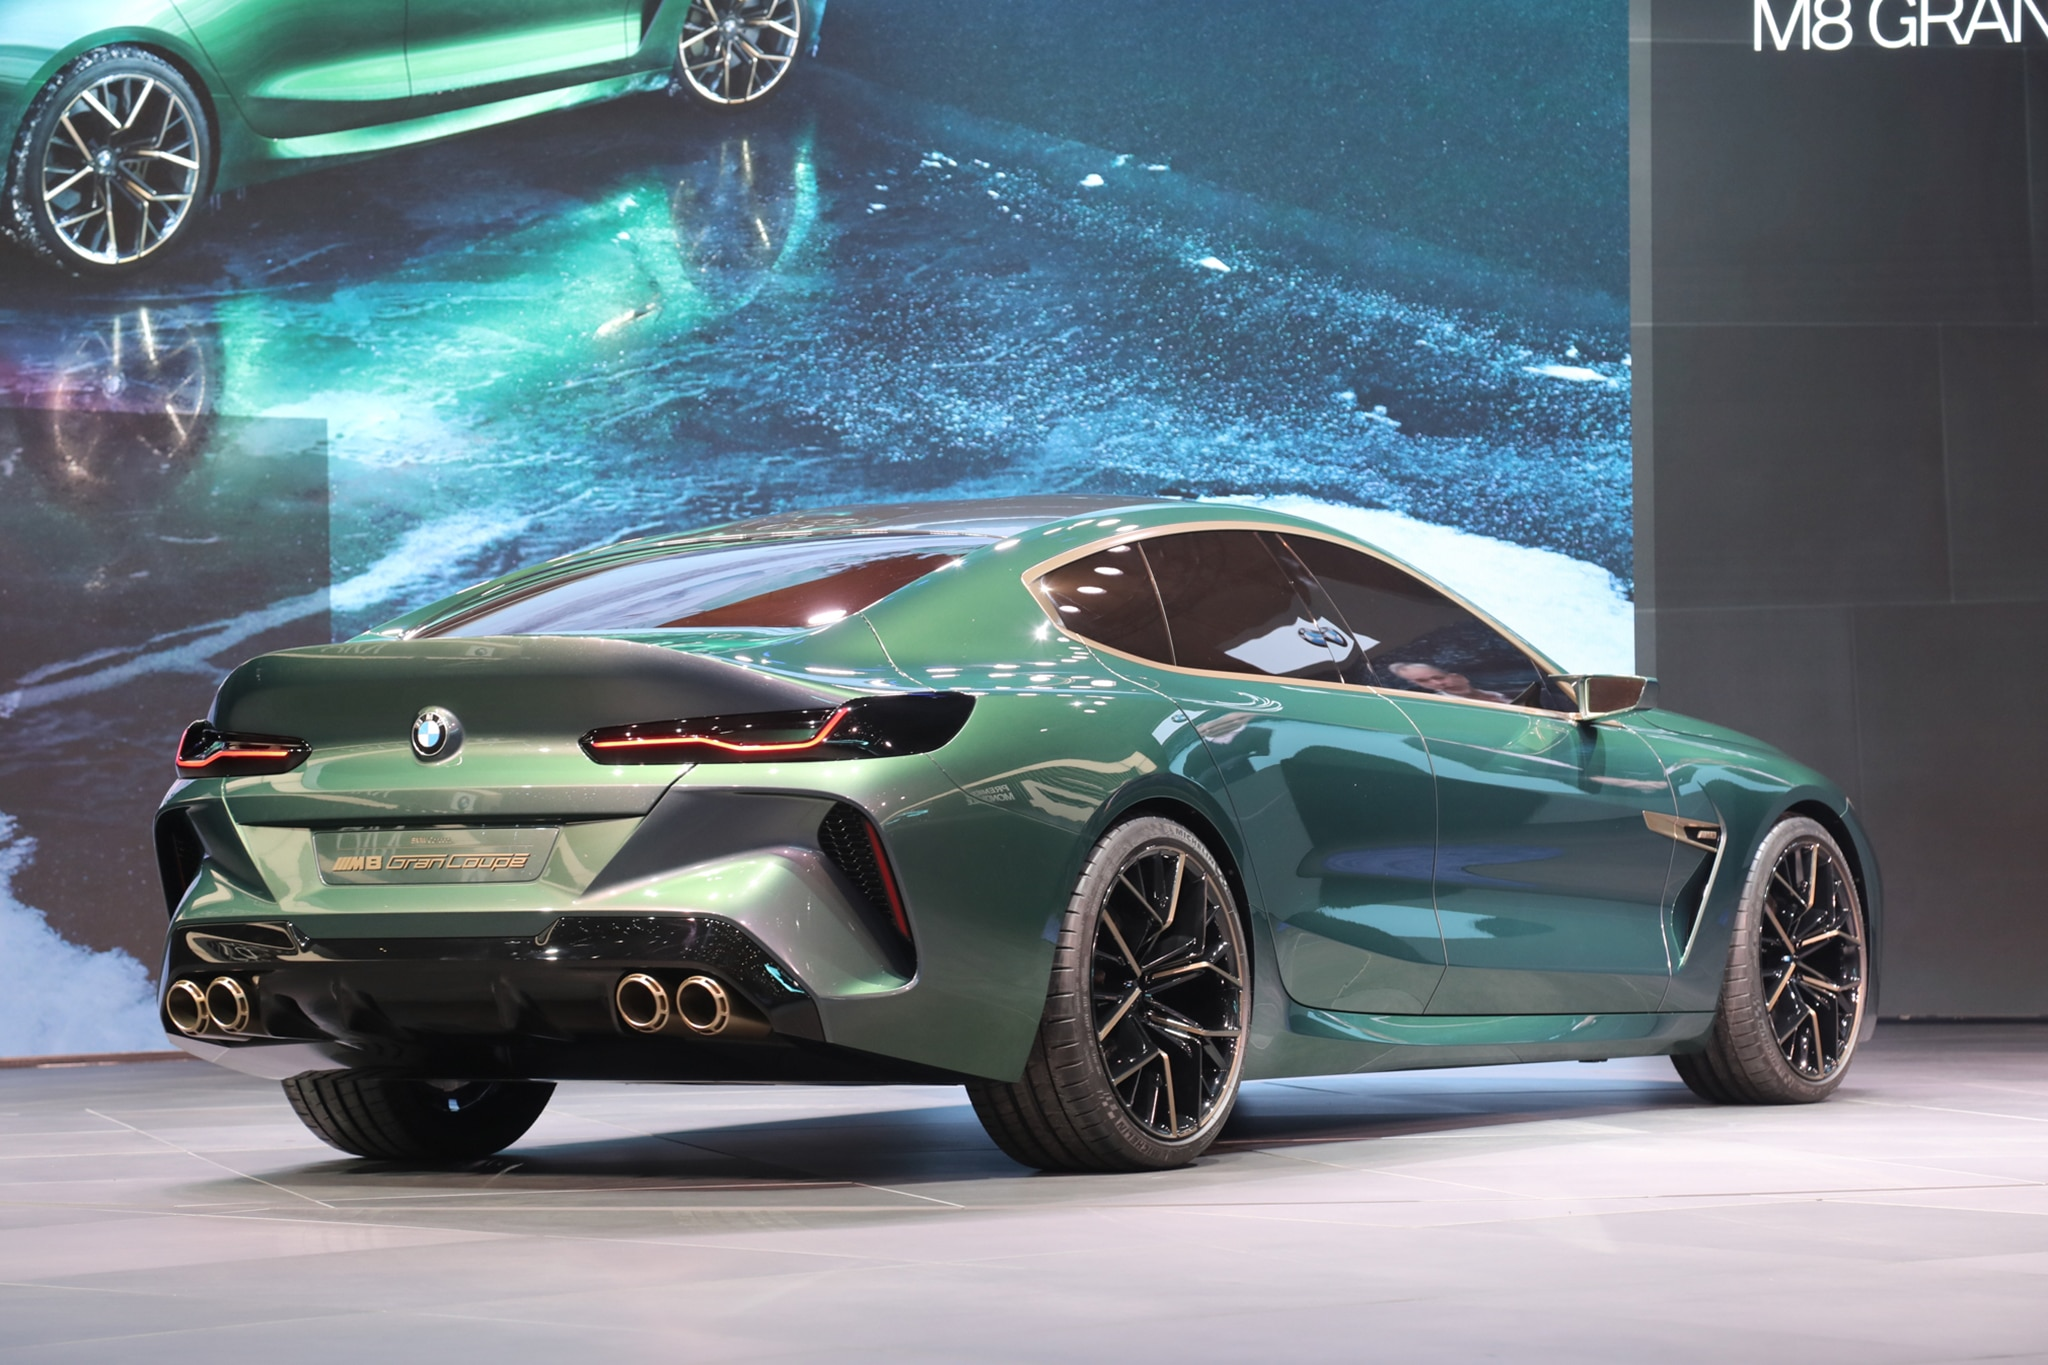 Four Door Bmw Concept M8 Gran Coupe Concept Unveiled In Geneva Automobile Magazine